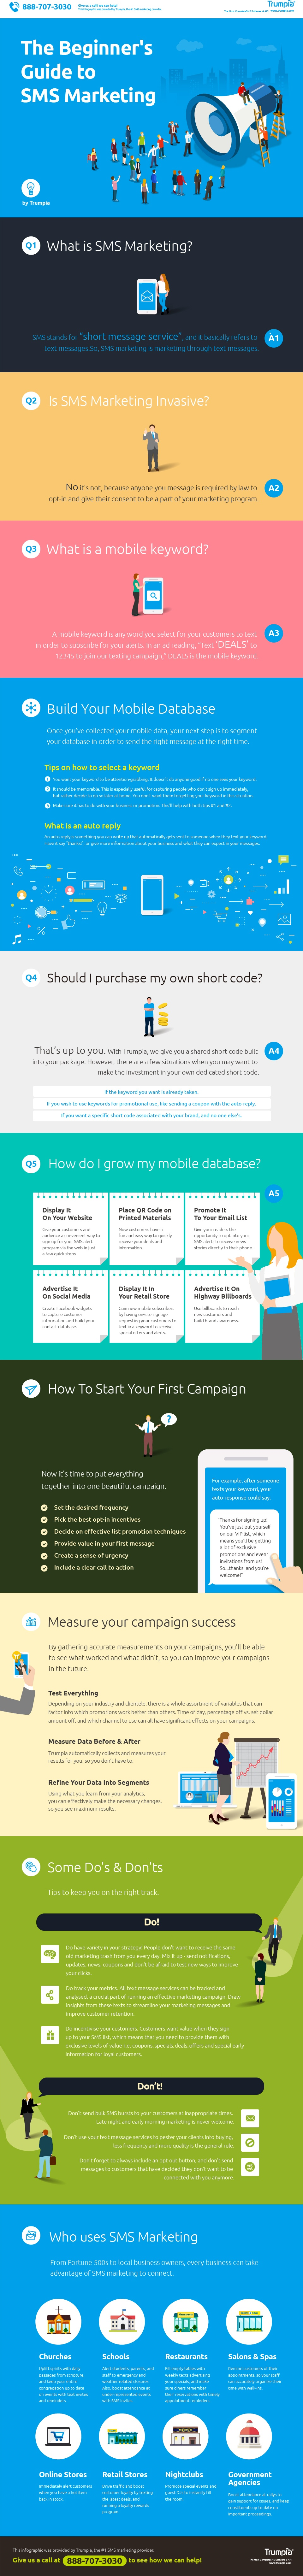 the-beginner_s-guide-to-sms-marketing-3.jpg